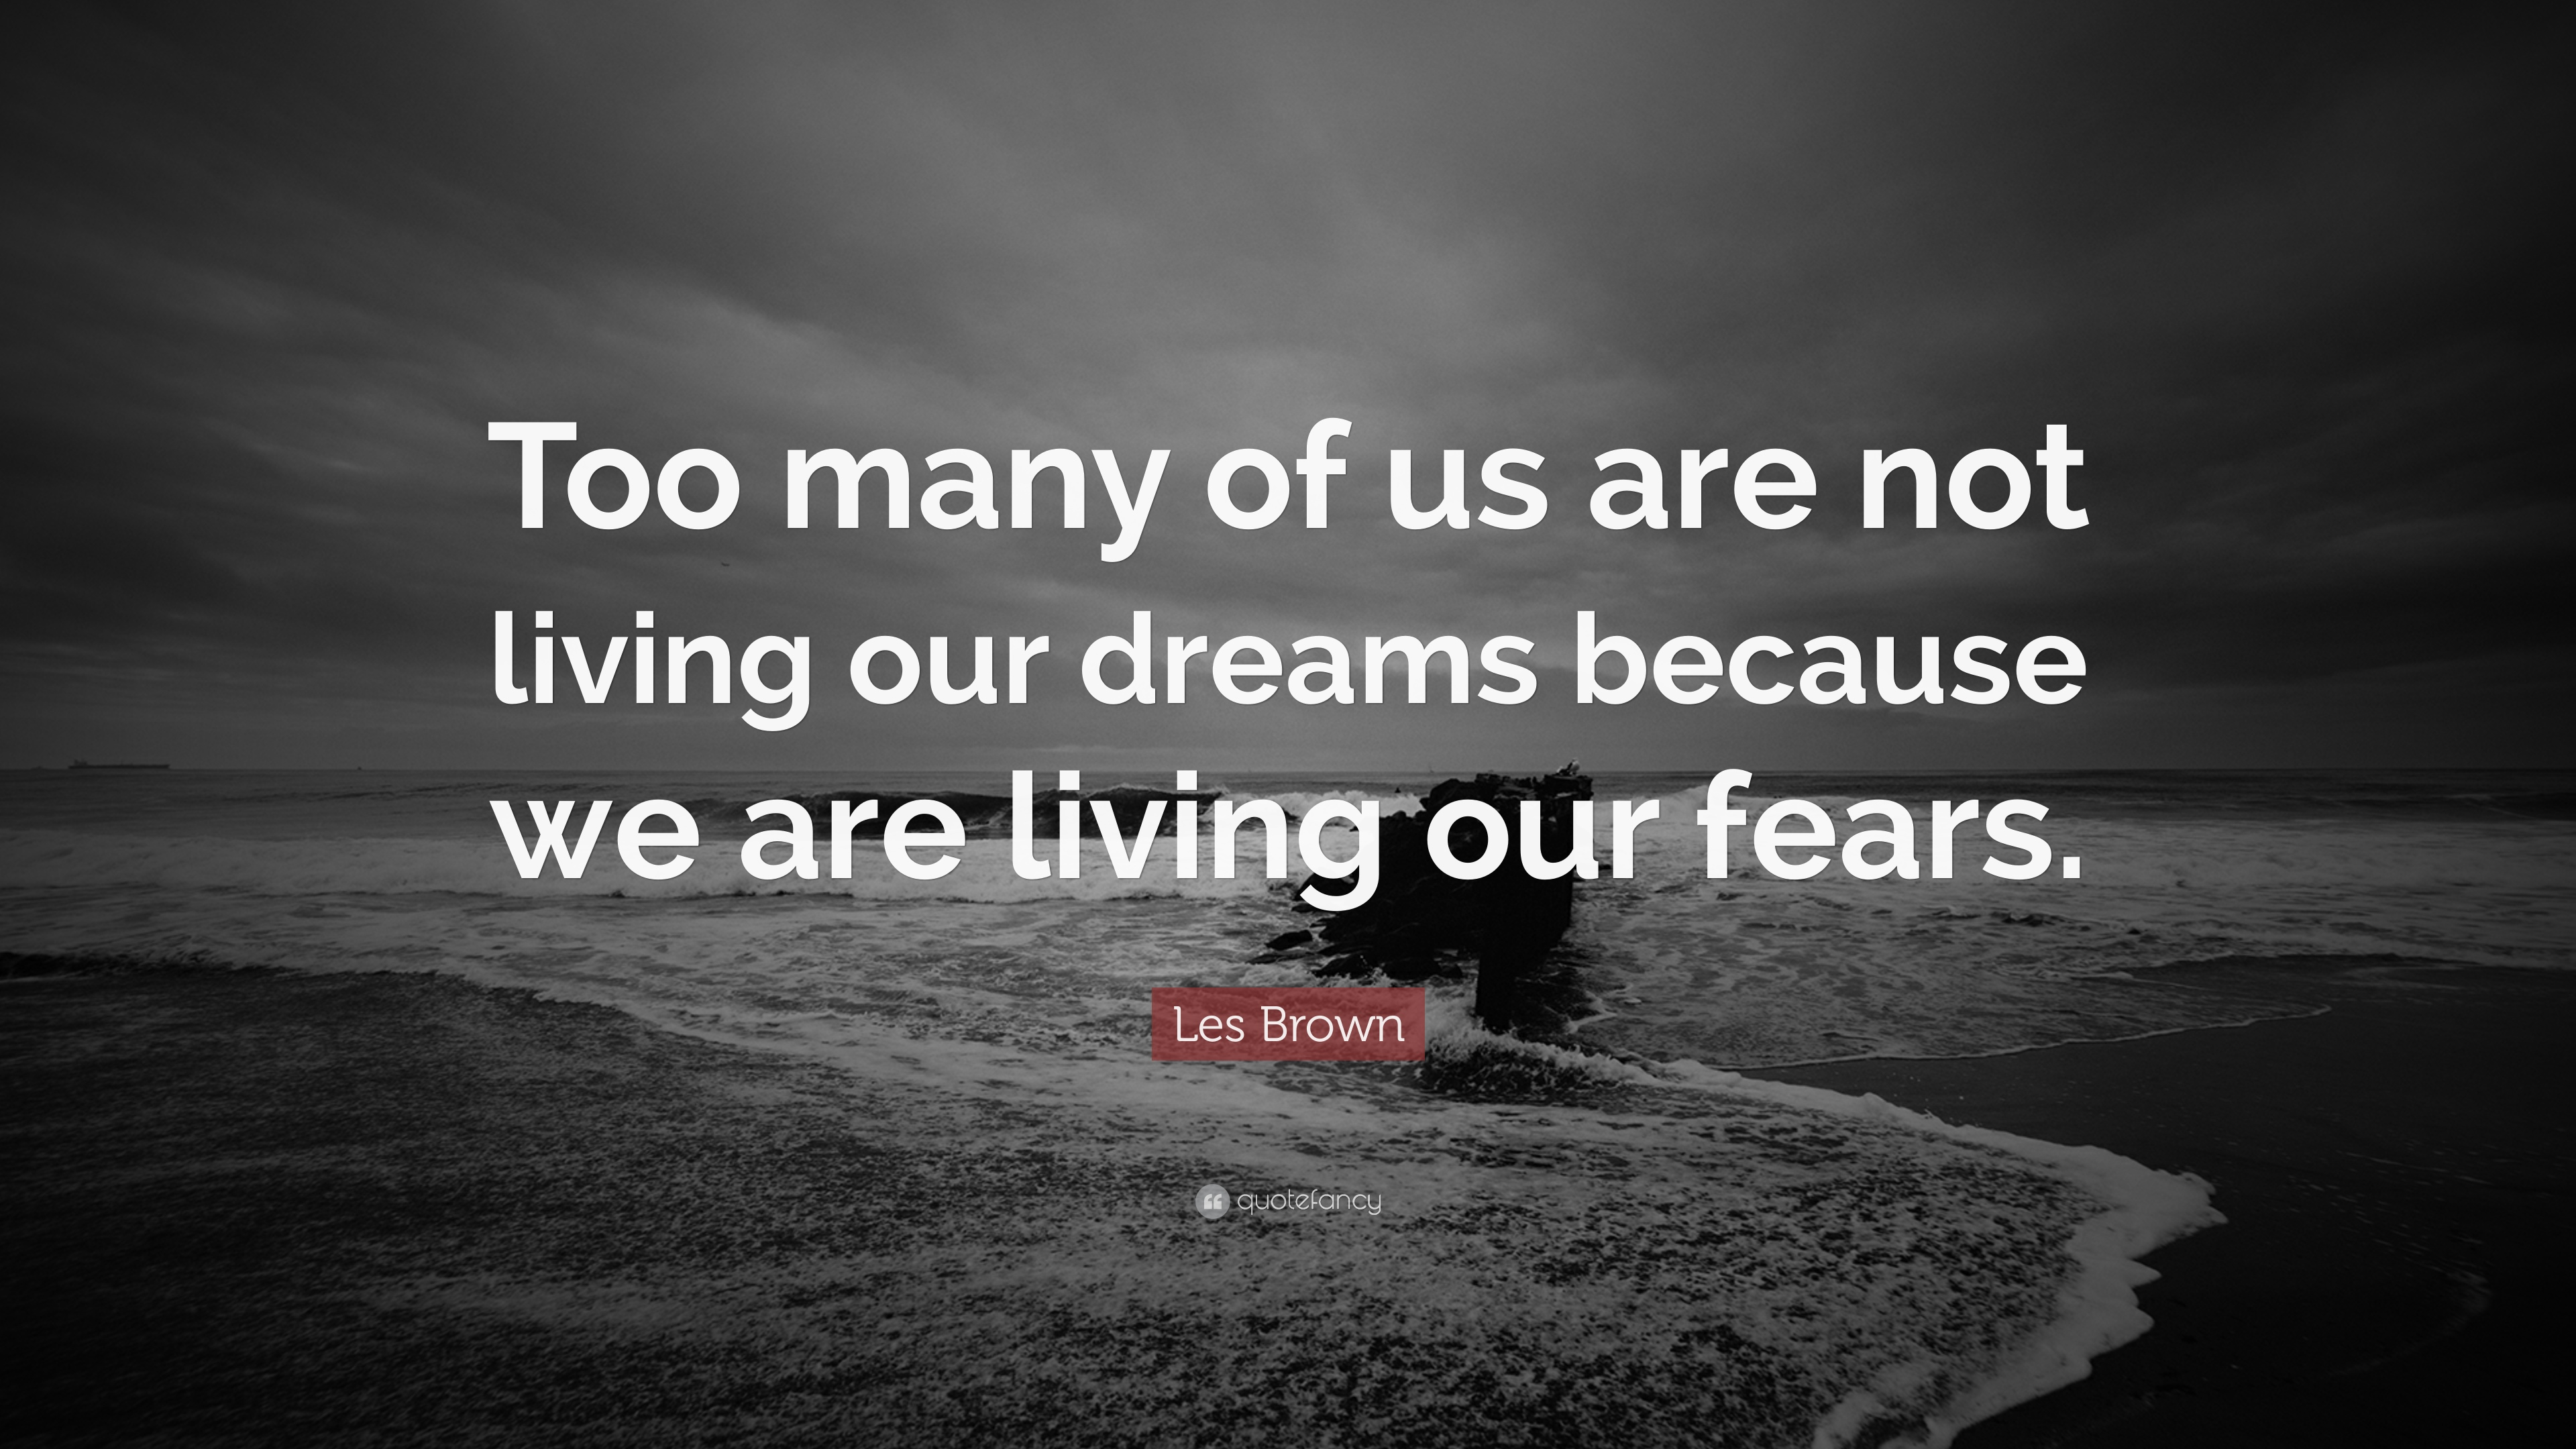 Courage Wallpapers Quotes Les Brown Quote Too Many Of Us Are Not Living Our Dreams